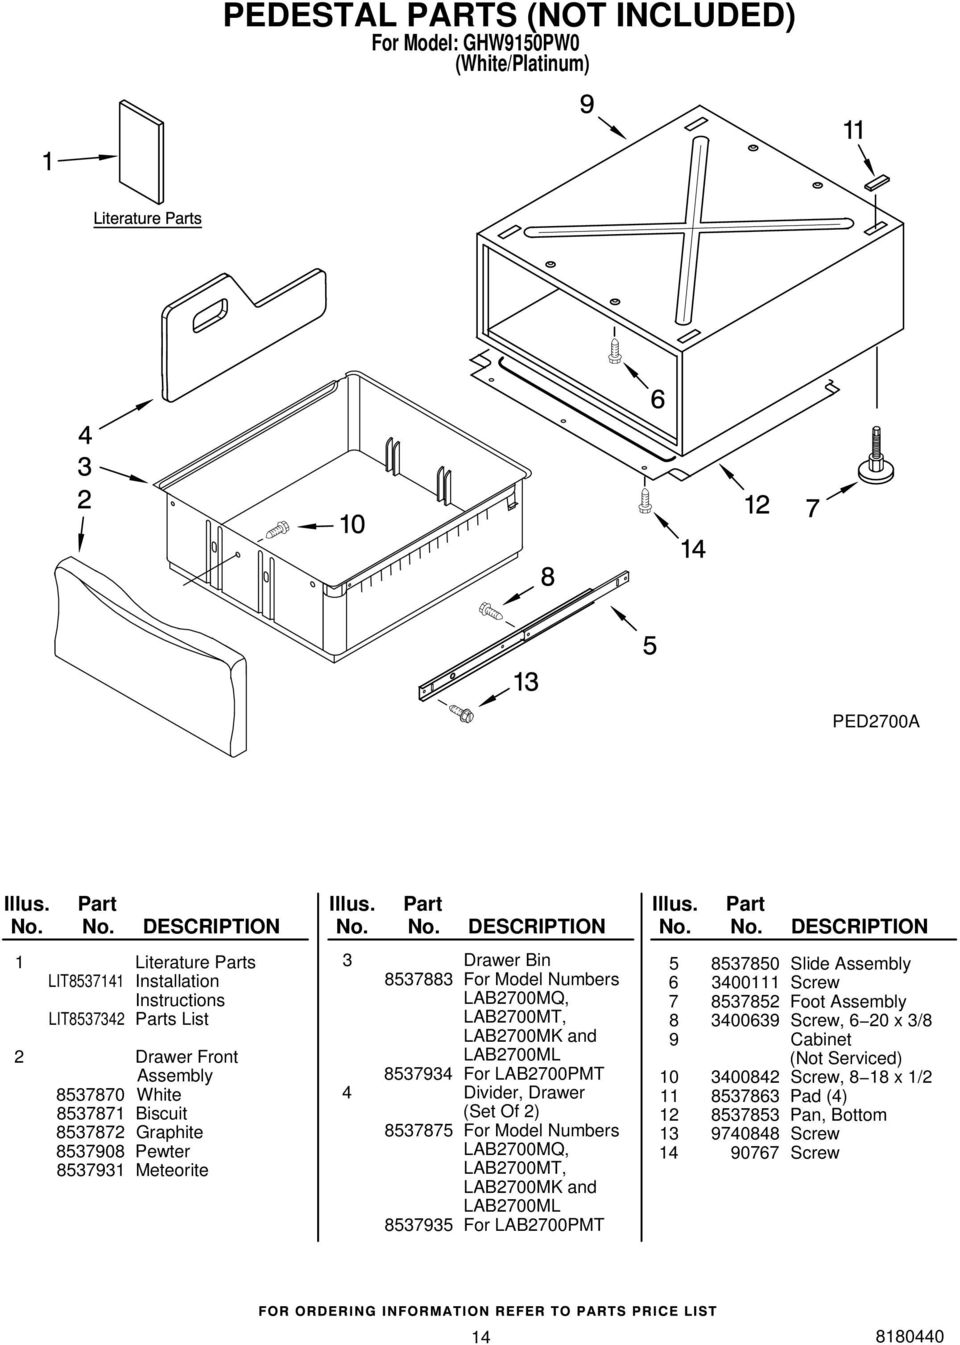 Divider, Drawer (Set Of 2) 8537875 For Model Numbers LAB2700MQ, LAB2700MT, LAB2700MK and LAB2700ML 8537935 For LAB2700PMT 5 8537850 Slide Assembly 6 3400111 Screw 7